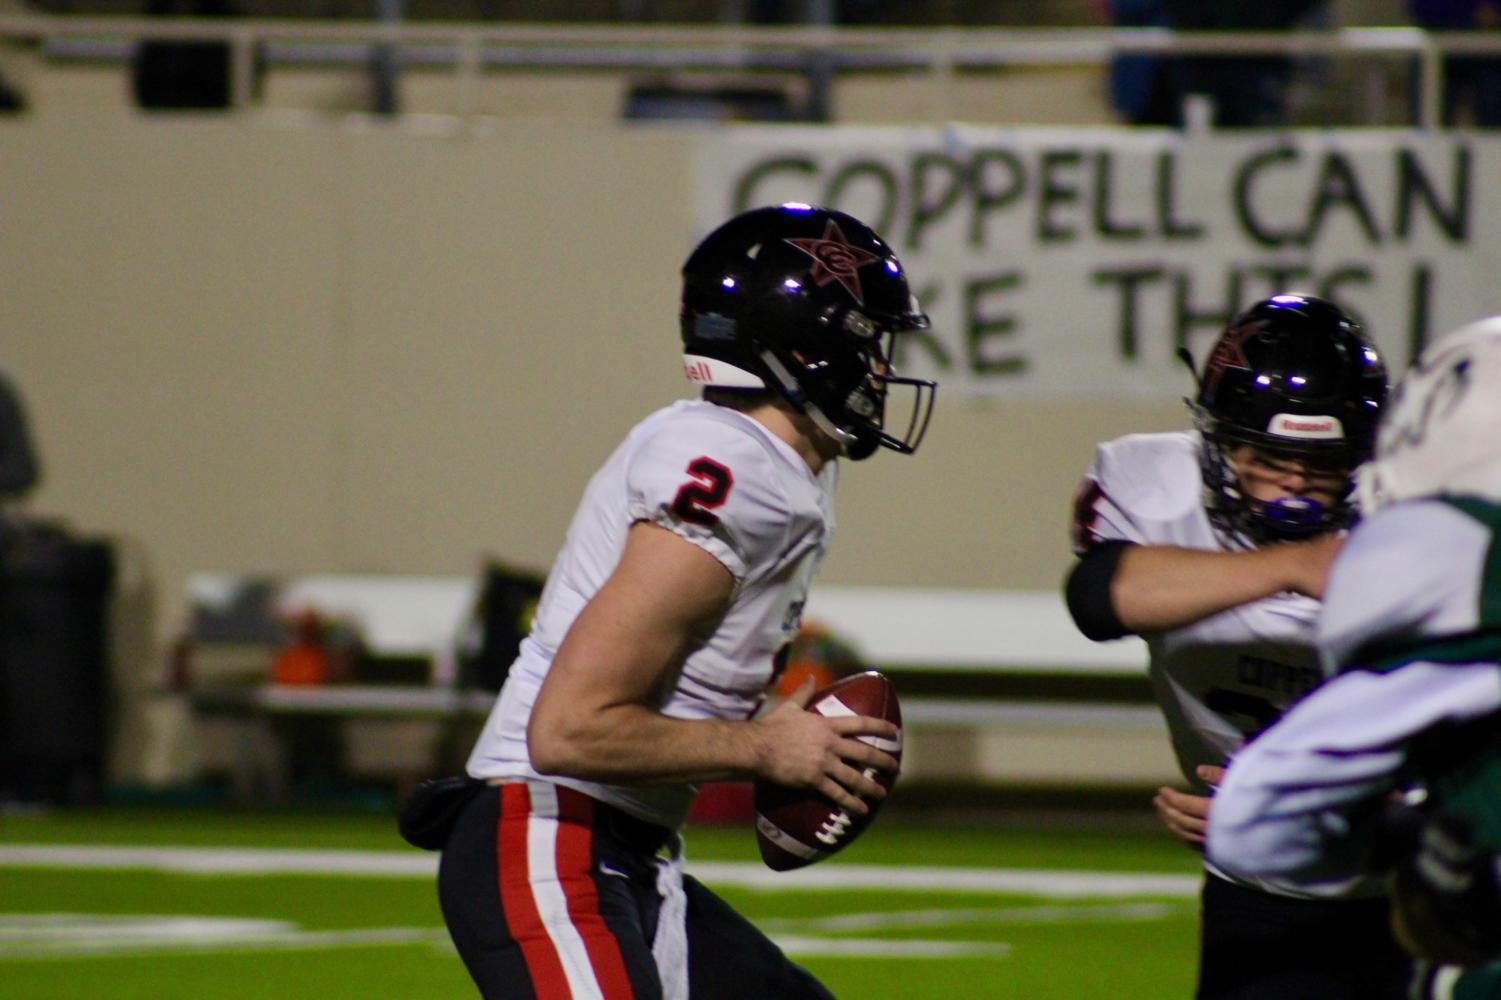 Coppell Cowboys senior quarterback Brady McBride looks for an open receiver to pass to during the second quarter of the game on Oct. 27 at the Ram-Wildcat Stadium in Richardson during a 59-20 victory. The Cowboys travel to Dallas to play Skyline on Friday night at Forester Field.